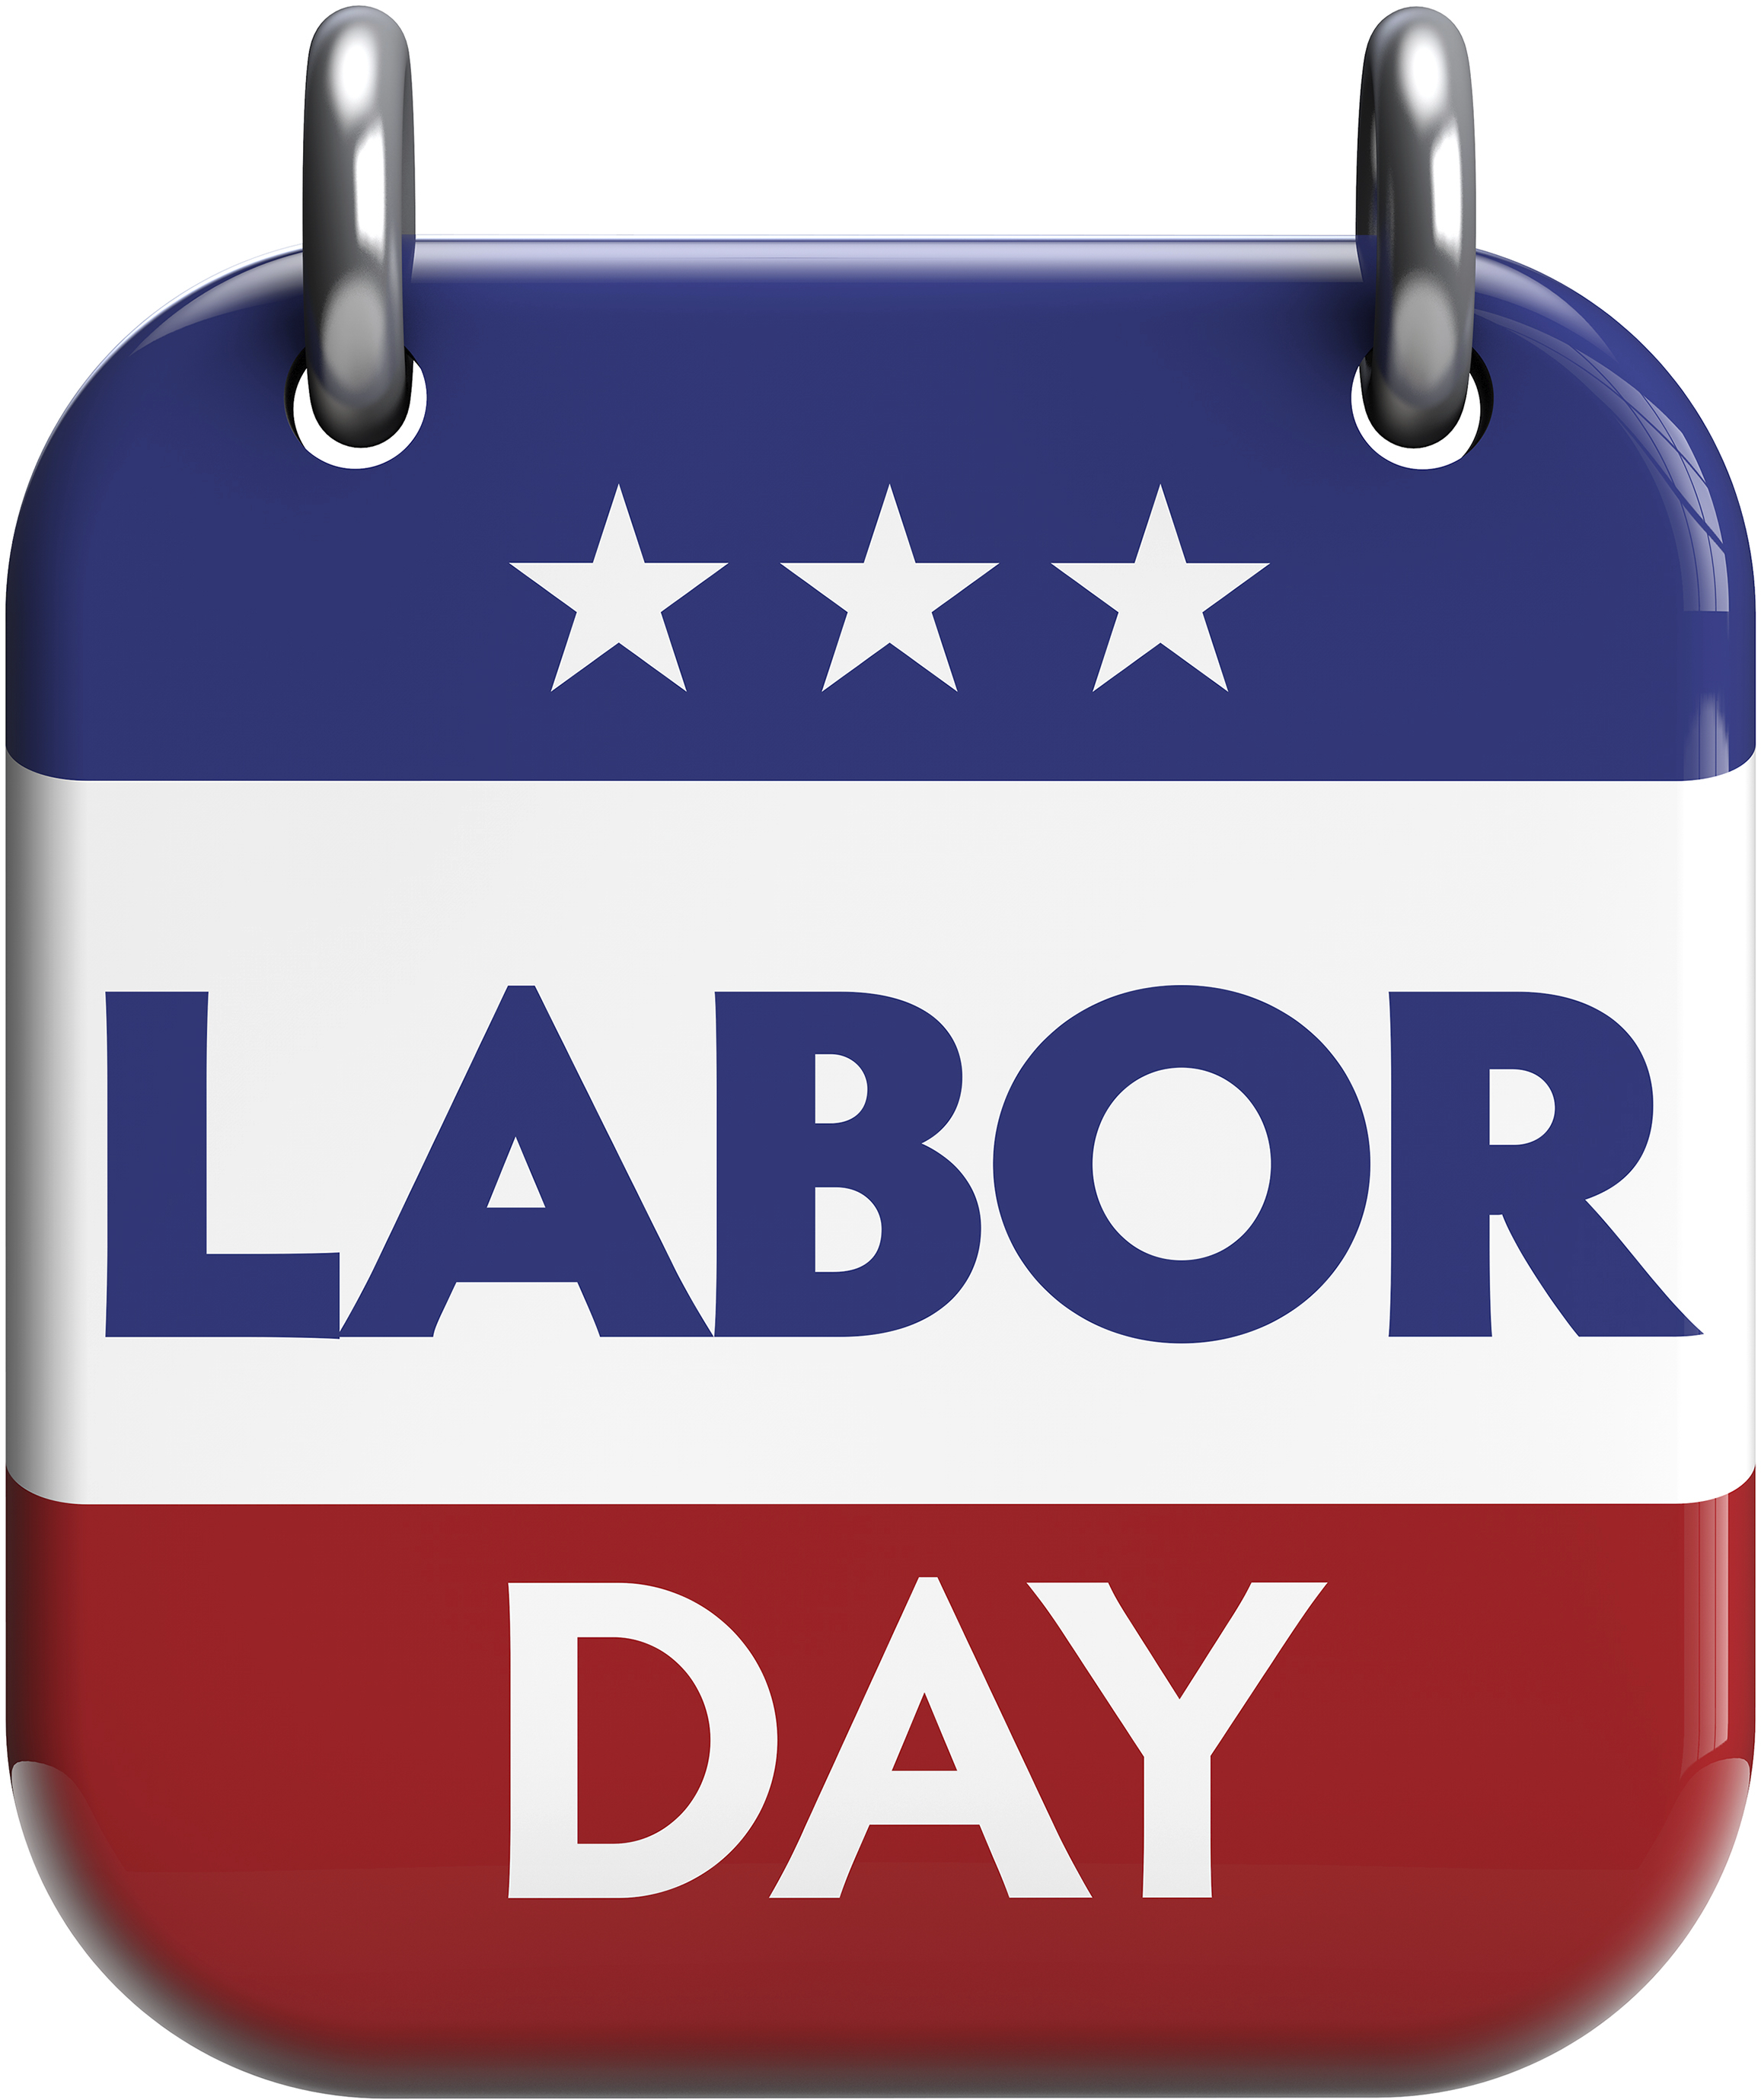 Labor Day Images Labor Day Wallpapers For Free Download Labor